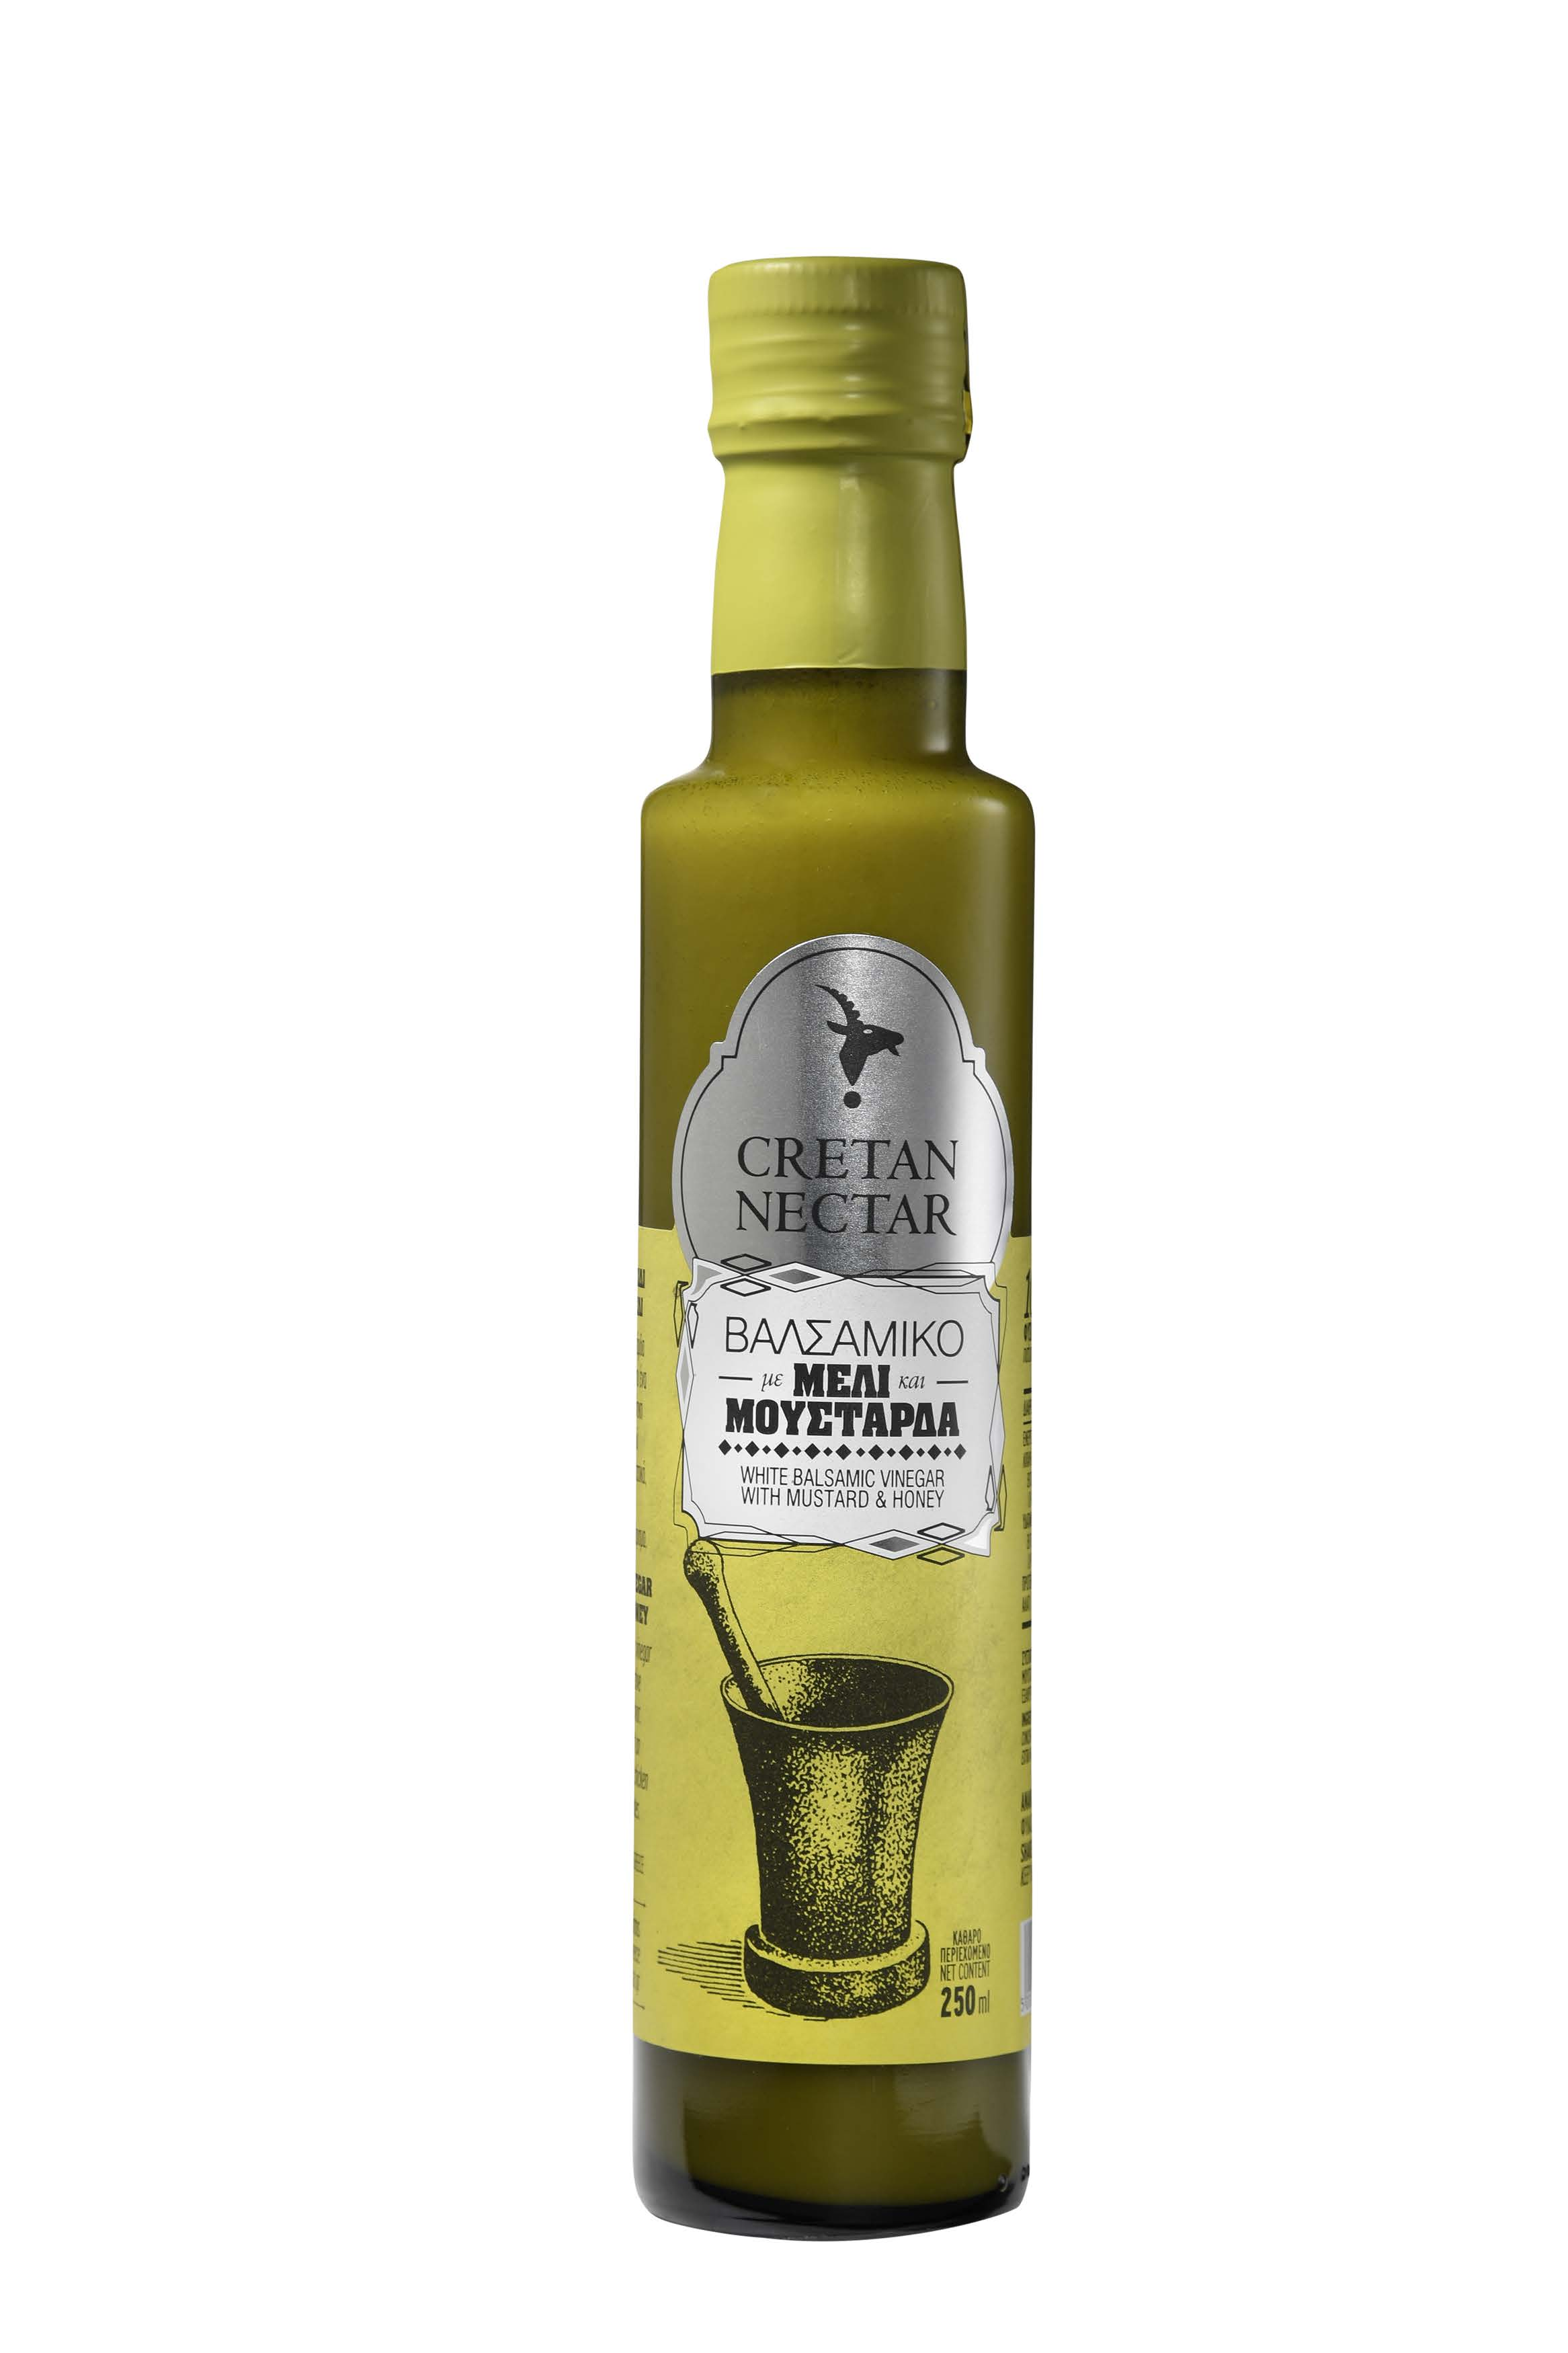 B2 Cabas Greece for Cretan nectar balsamic vinegar with mustard and honey 250ml